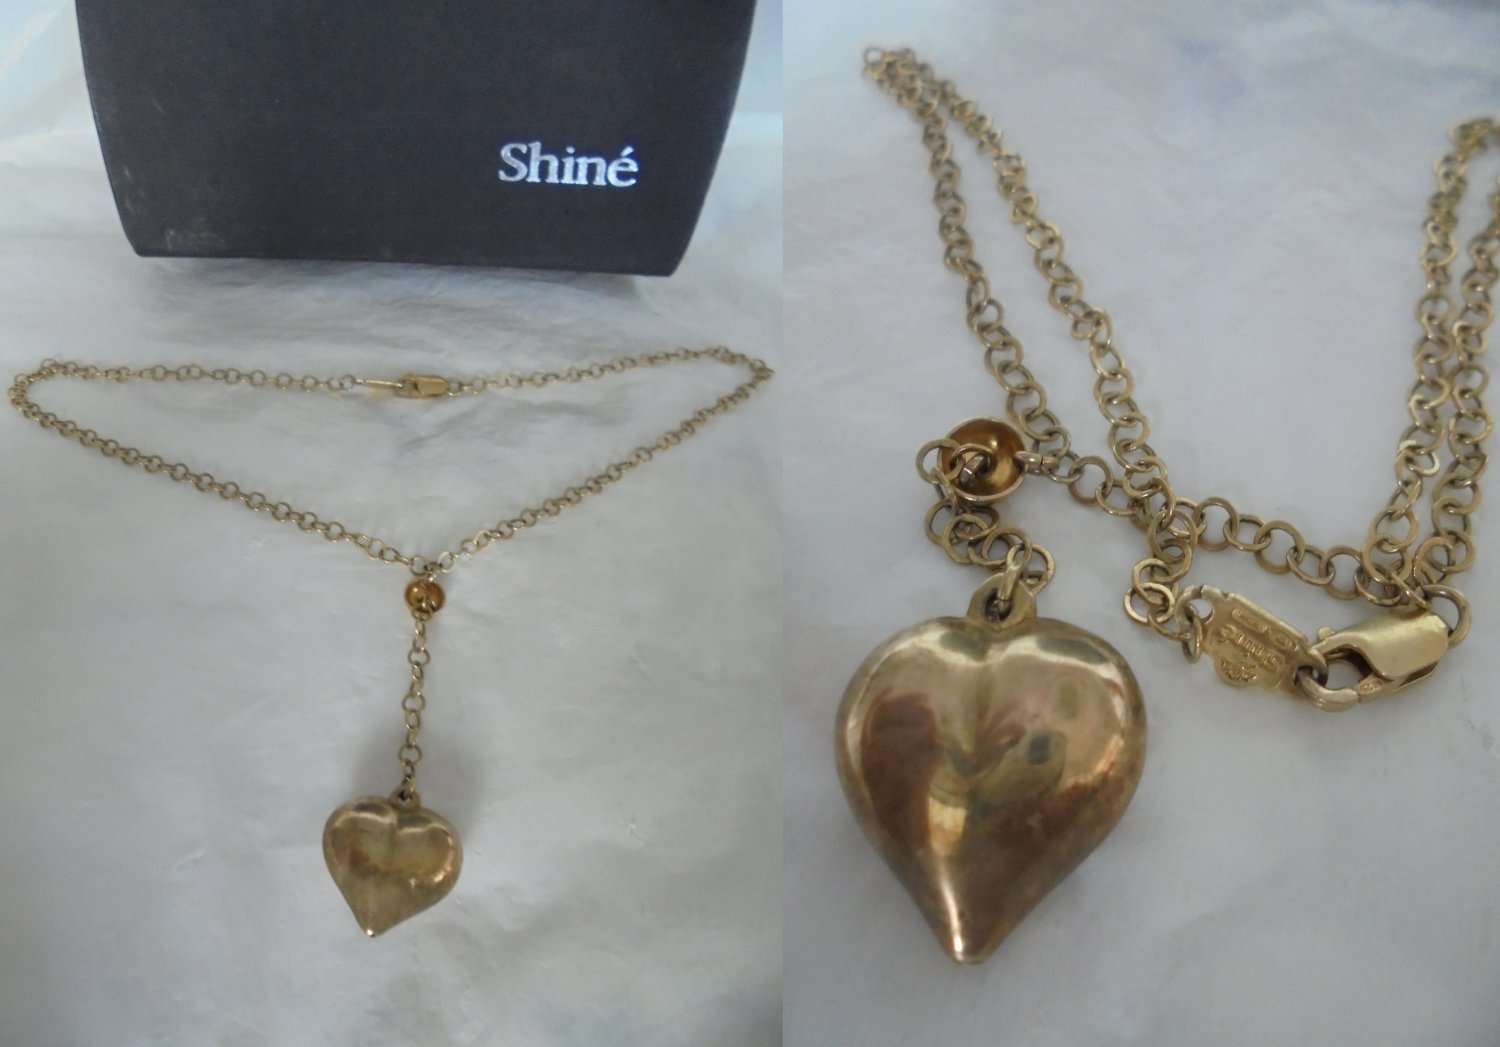 Shinè NECKLACE in STERLING SILVER 925 and gold plated with heart charm pendent In gift box